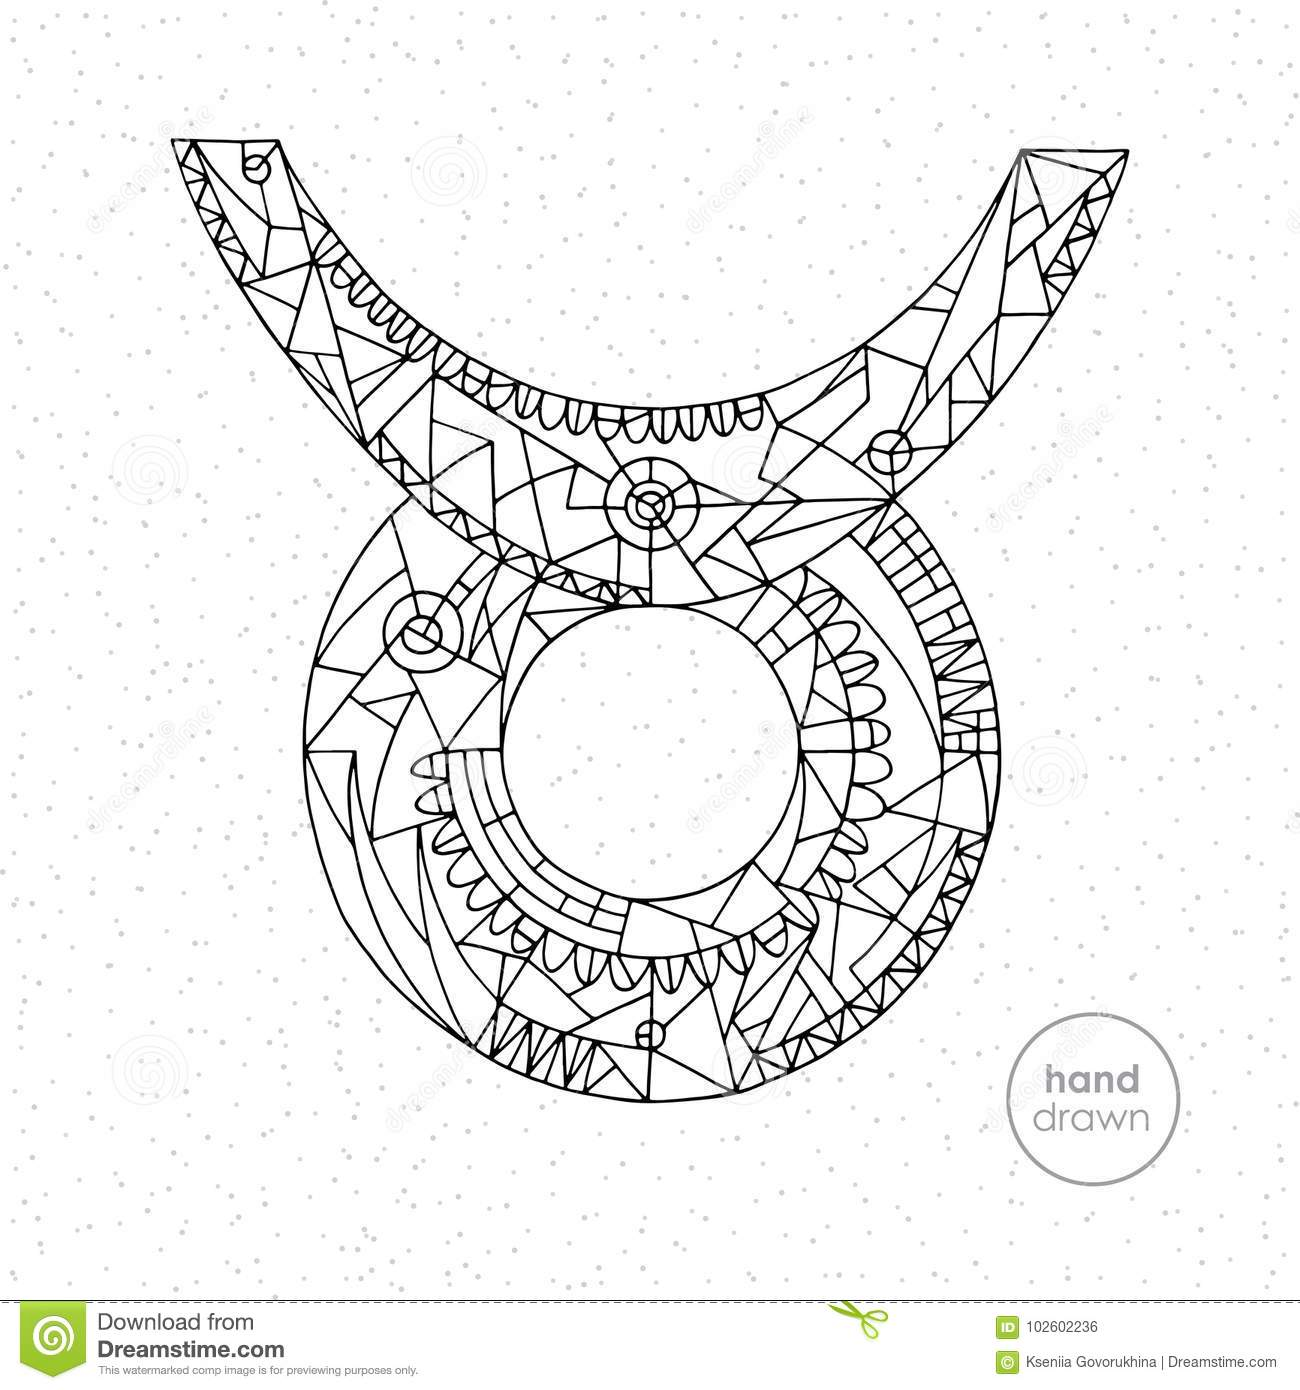 Taurus zodiac sign vector hand drawn horoscope illustration astrological coloring page